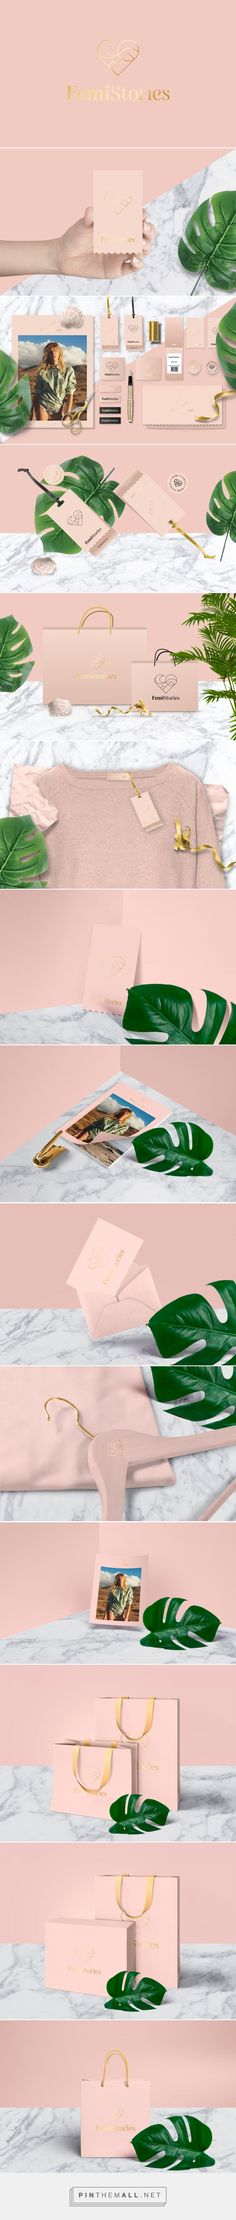 Femi Stories Womens Fashion Branding by Lange & Lange | Fivestar Branding Agency – Design and Branding Agency & Curated Inspiration Gallery